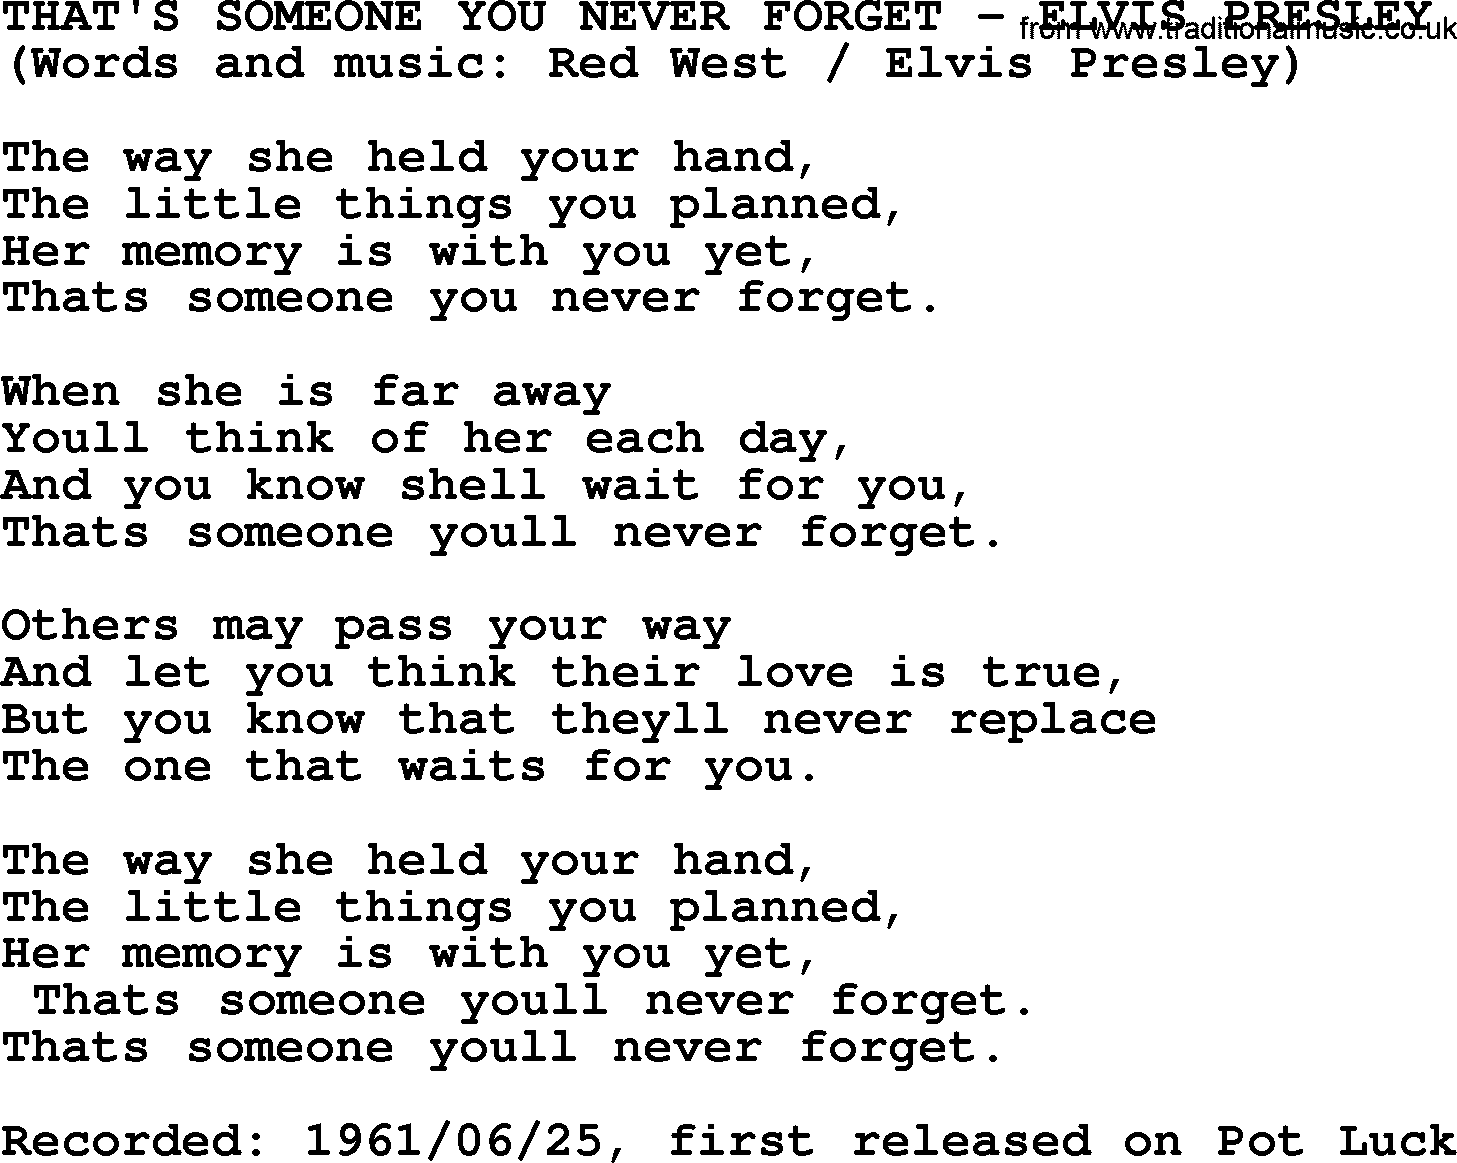 Thats someone you never forget by elvis presley lyrics elvis presley song thats someone you never forget lyrics hexwebz Image collections